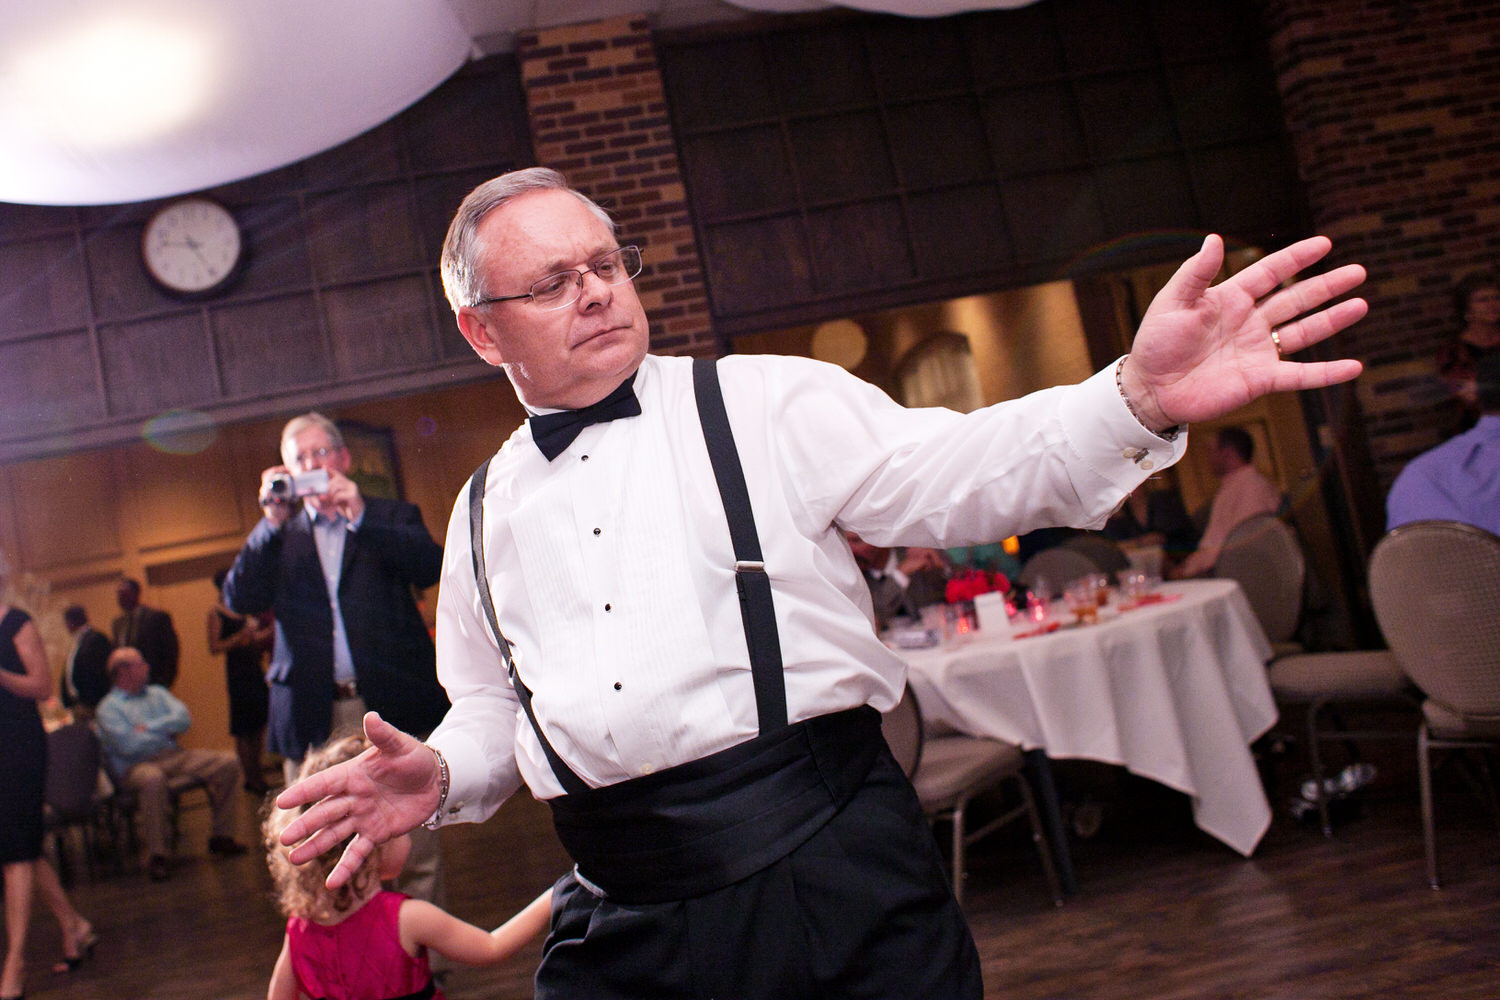 father dancing